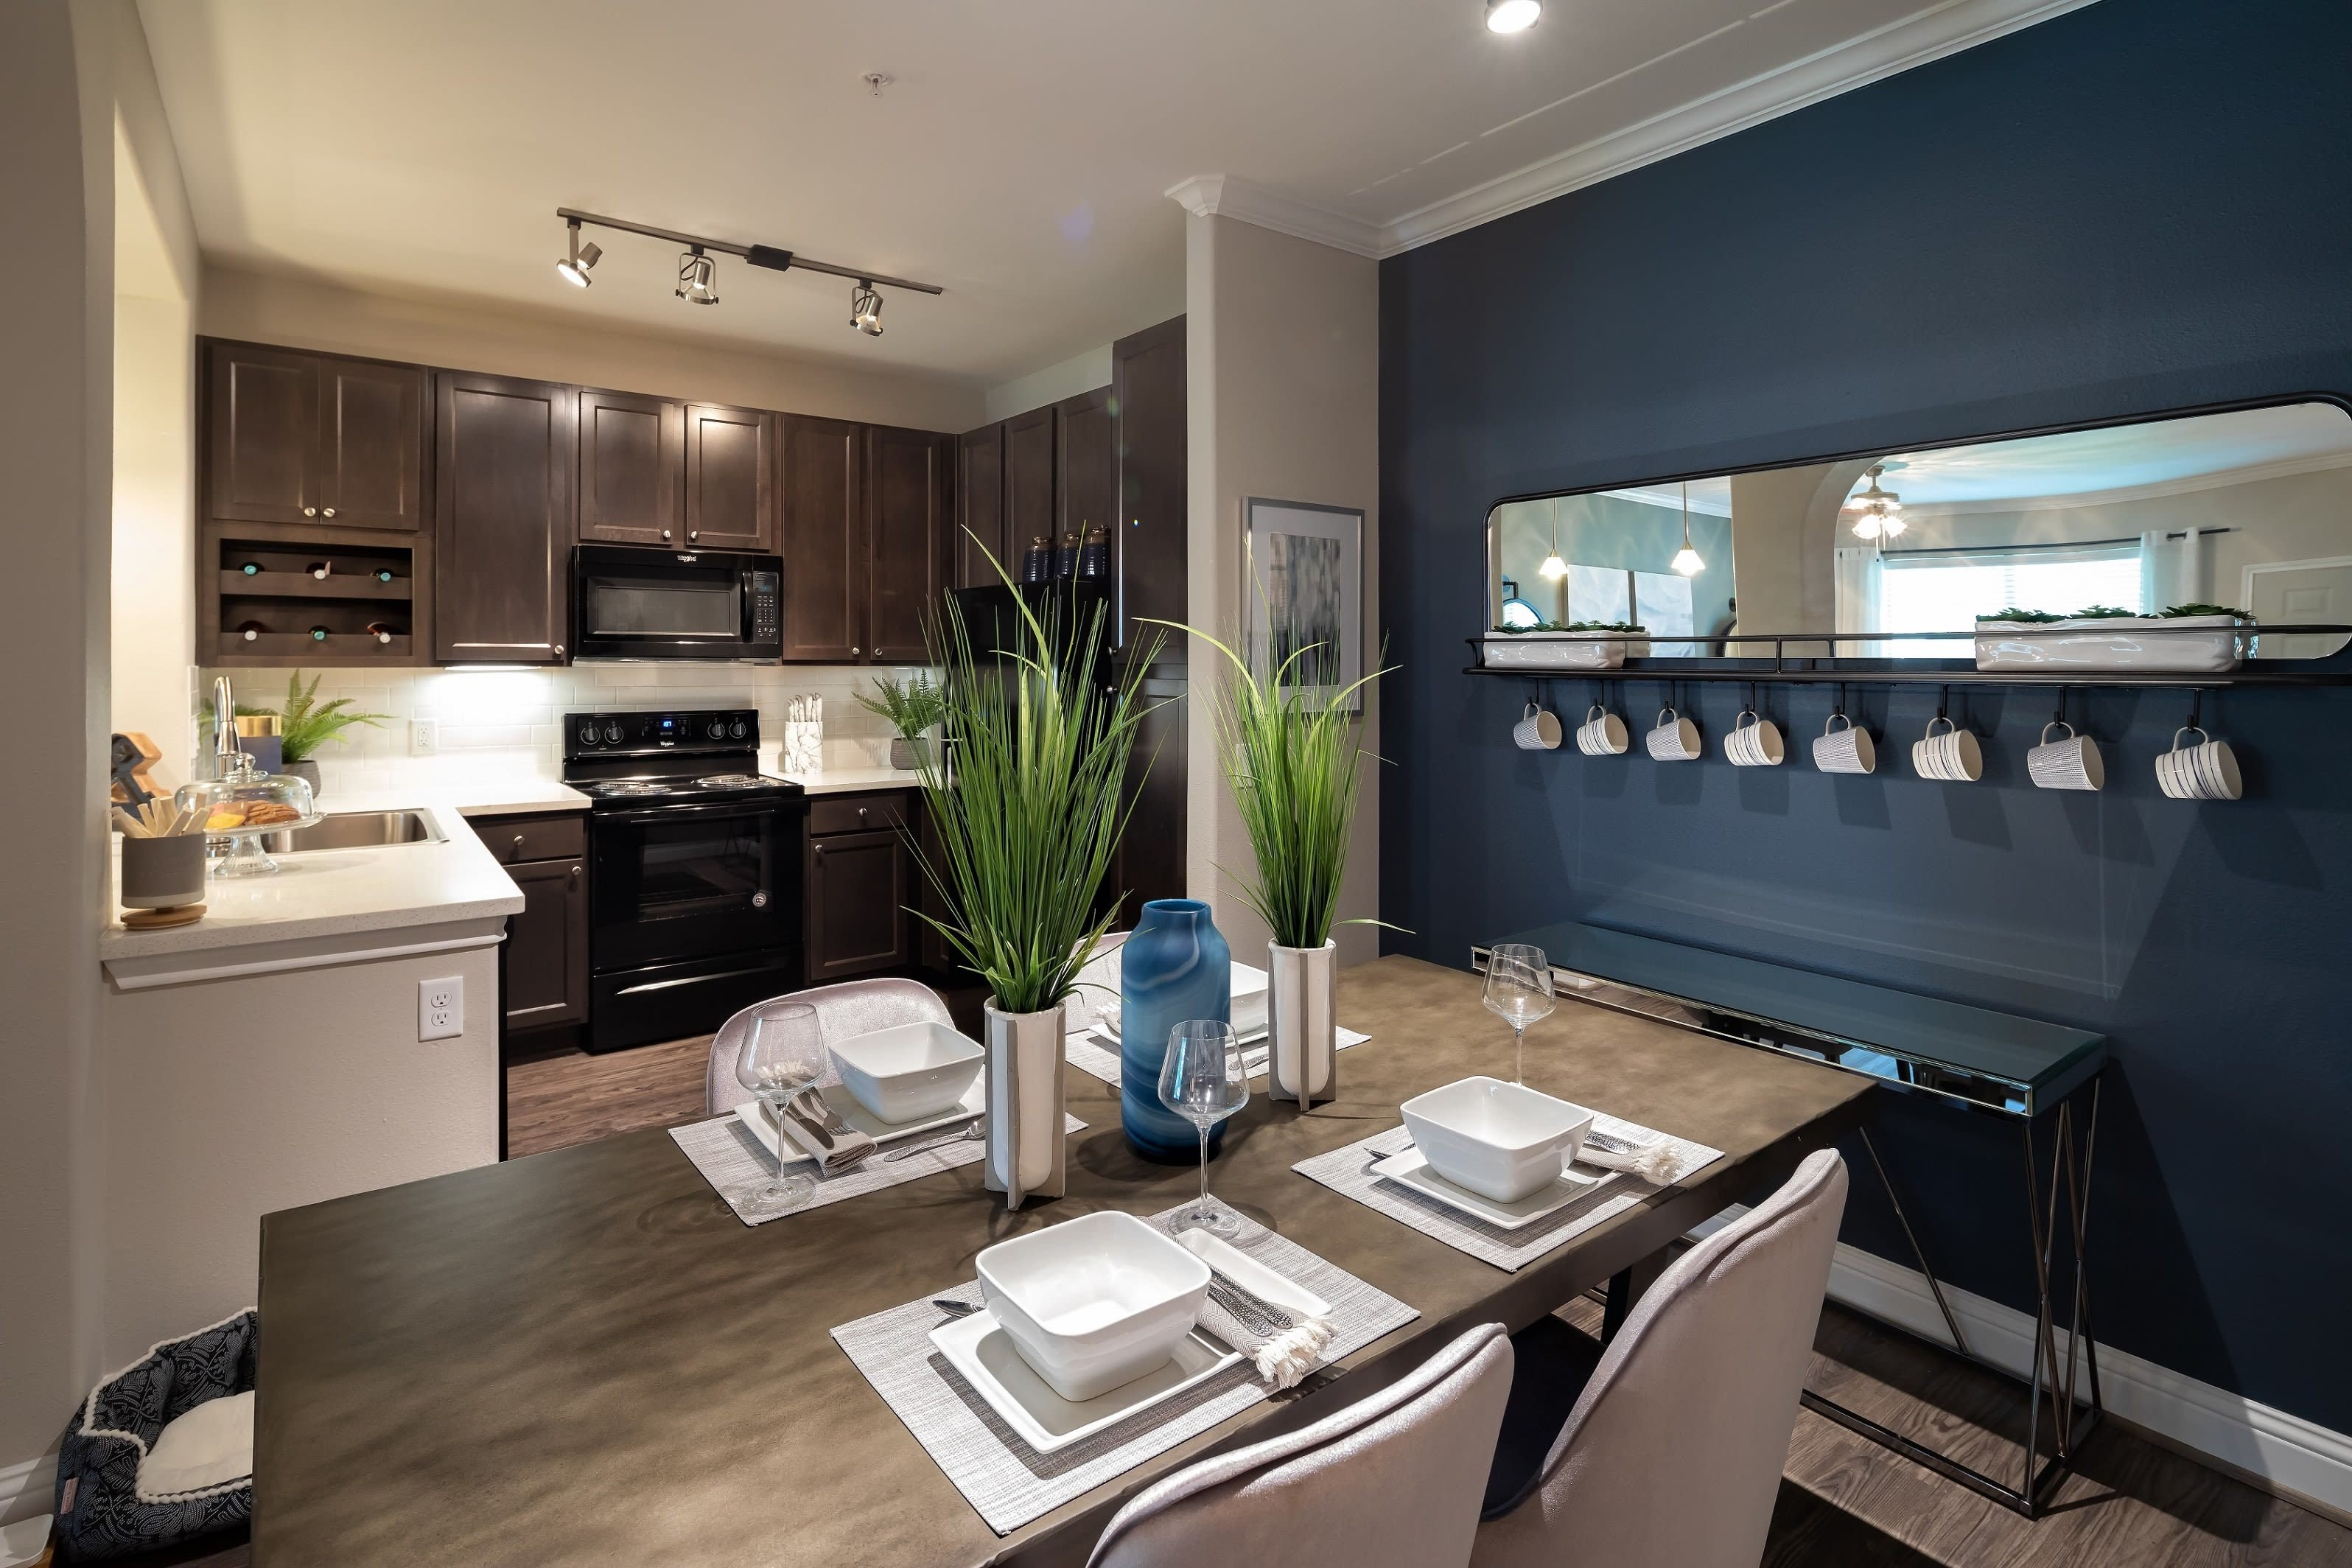 Best Luxury 1 2 3 Bedroom Apartments In Katy Tx With Pictures